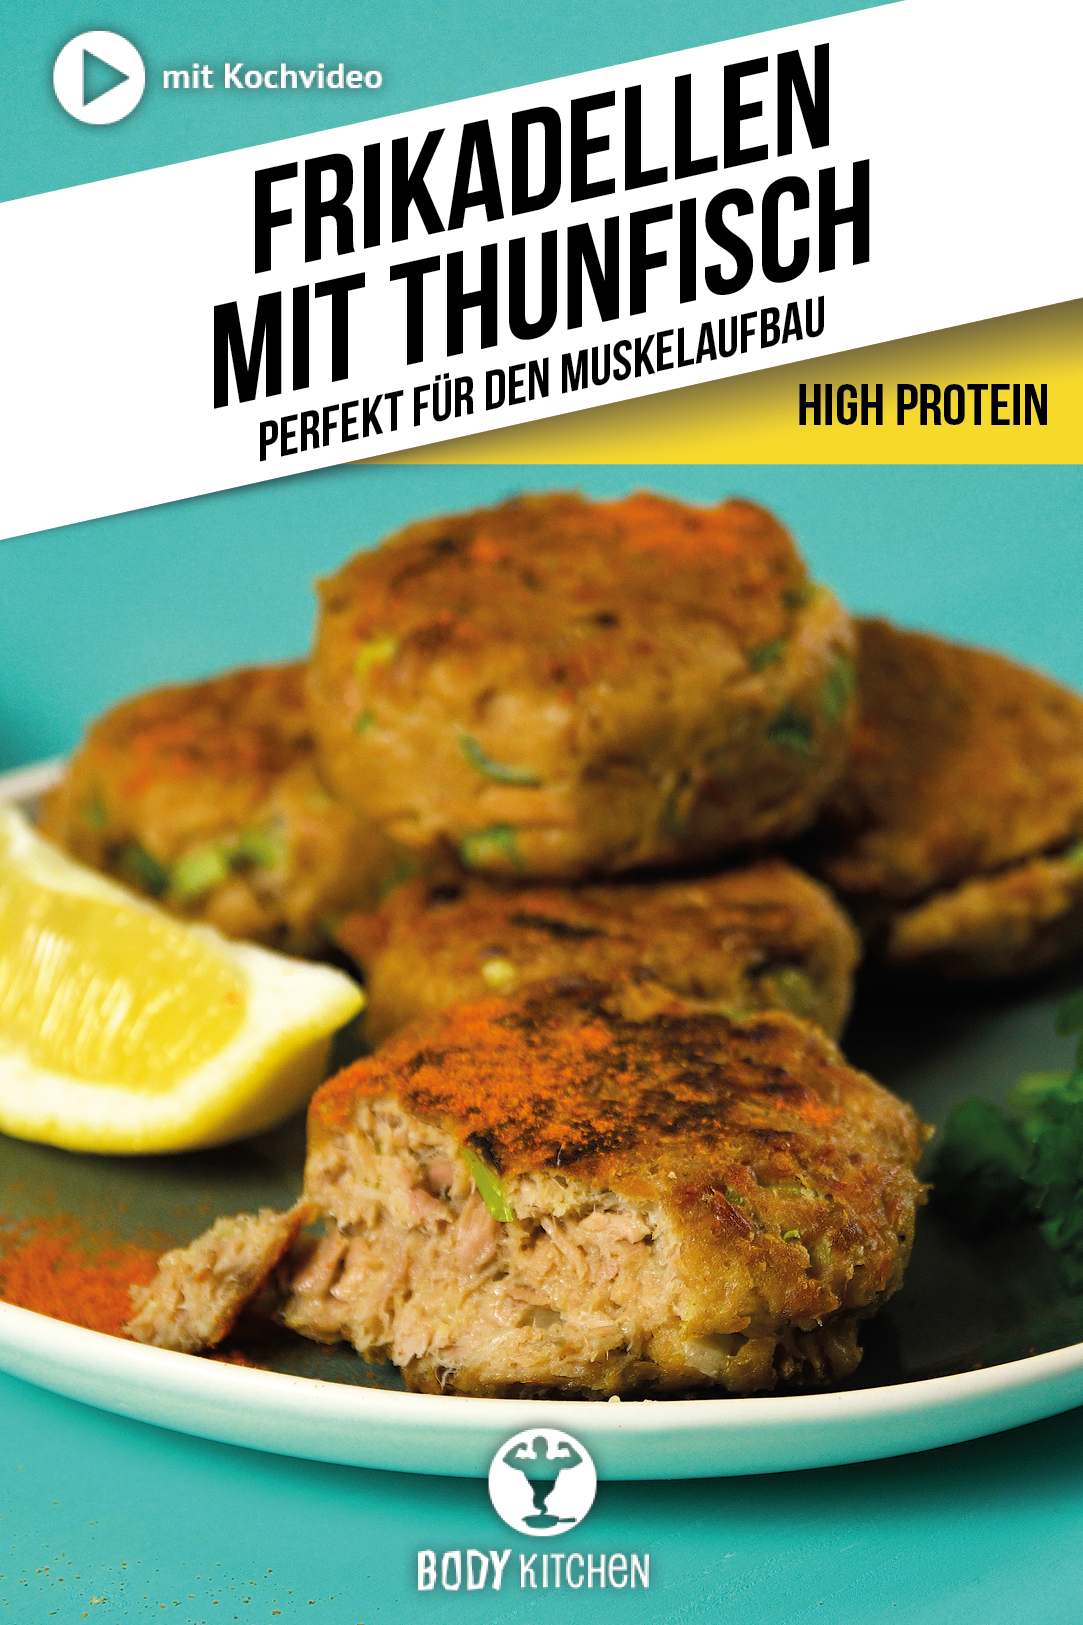 Tuna meatballs - fitness recipe from BODY KITCHEN -  Delicious fish cakes with tuna. #meatballs #fis...